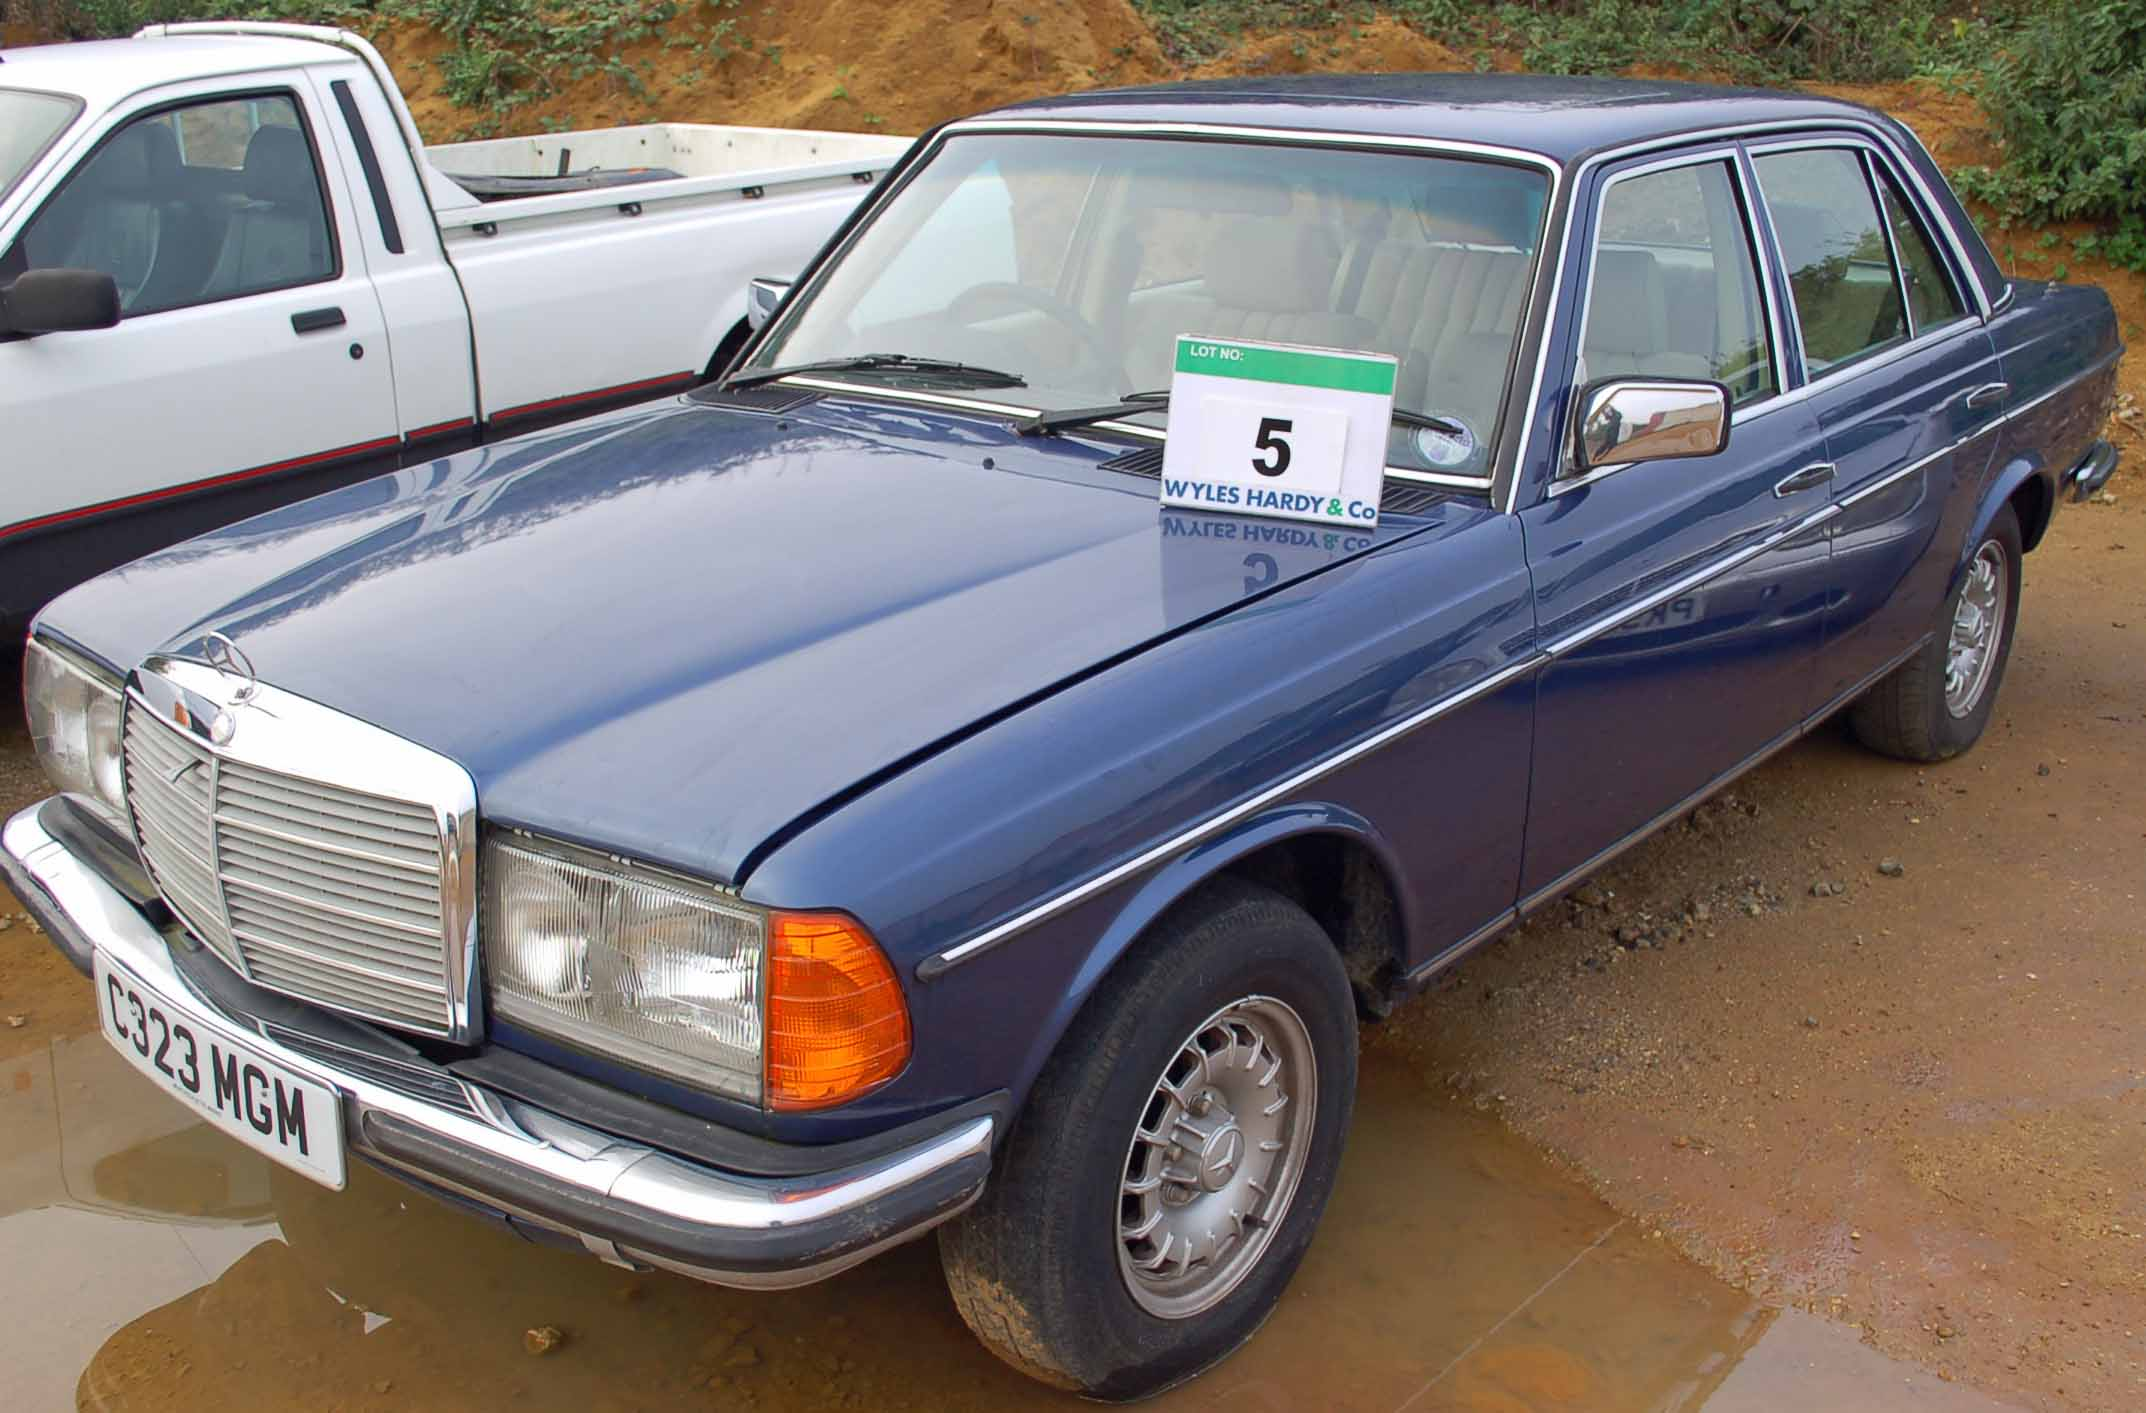 Lot 5 - A MERCEDES 280 E 4-Door Auto, Registration No. C323 MGM, First Registered: 01/08/1985, Recorded